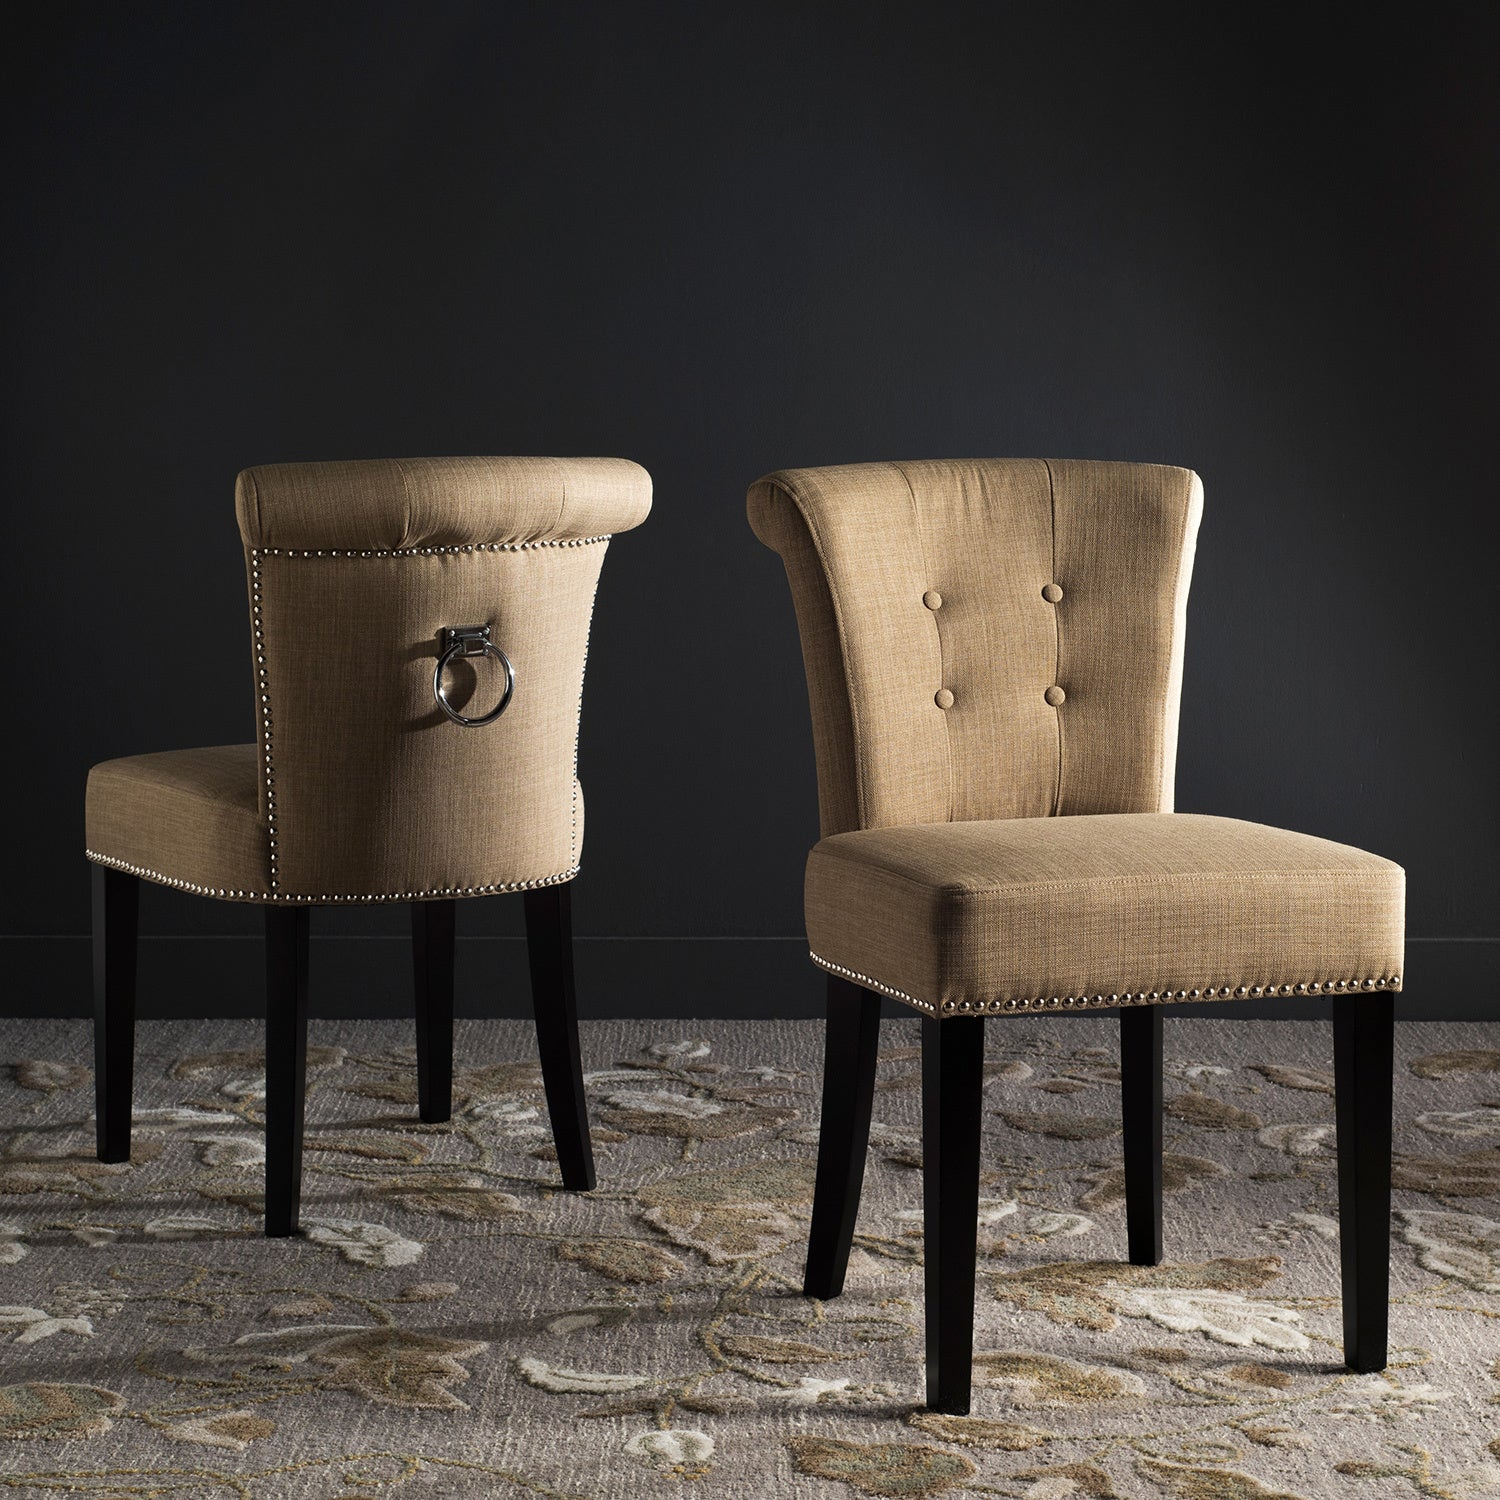 Ordinaire Shop Safavieh Sinclair Beige Ring Chairs (Set Of 2)   Free Shipping Today    Overstock.com   10857092